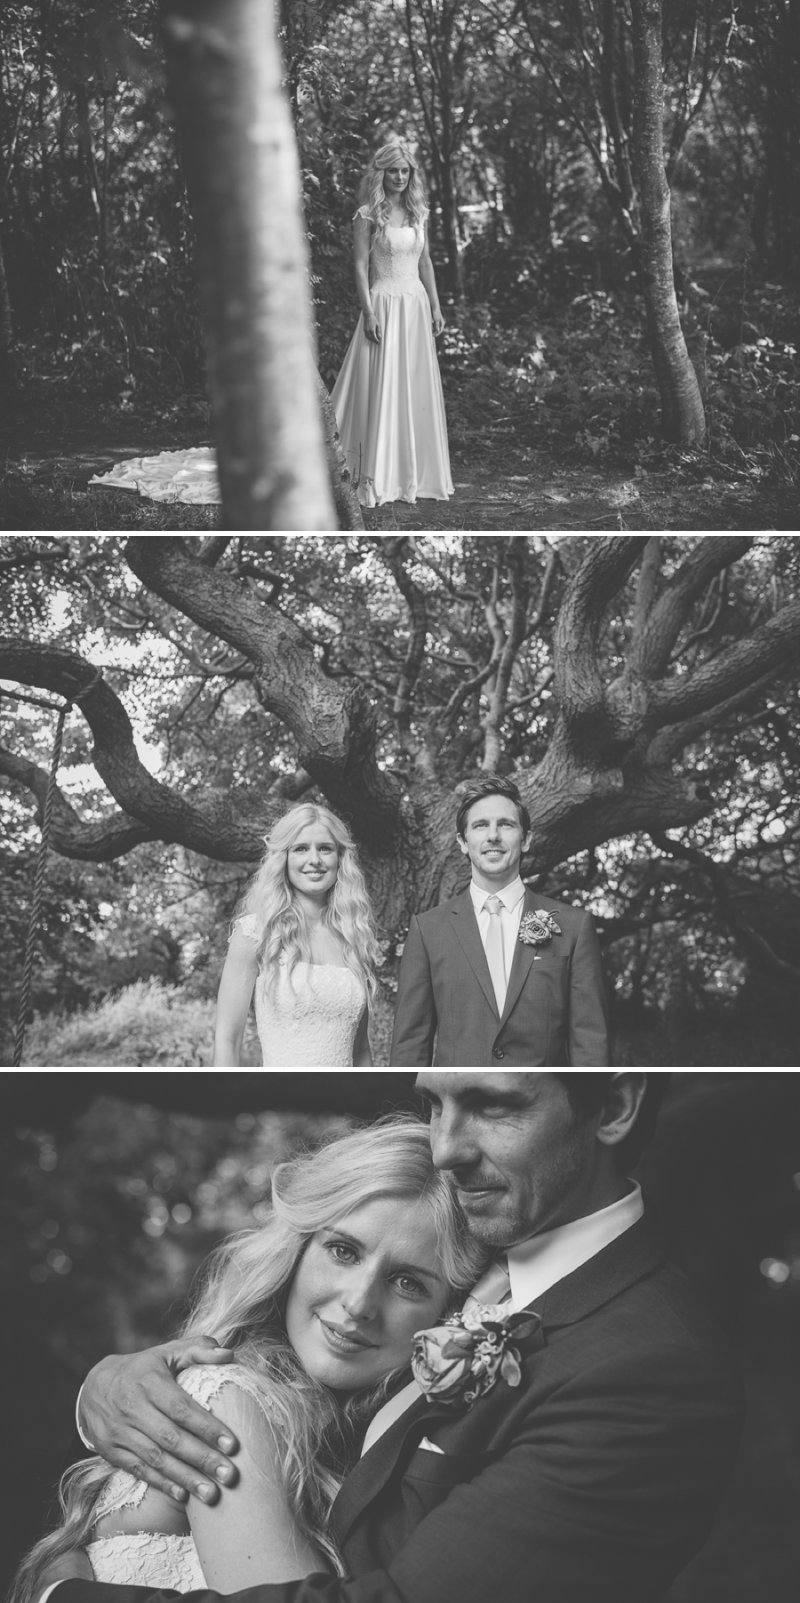 An Ethereal Summer Woodland Wedding At Hilton Court Gardens In Pembrokeshire Wales With A Silk Stephanie Allin Dress And An Amnesia Rose Bouquet Photographed By O&C Photography._0012